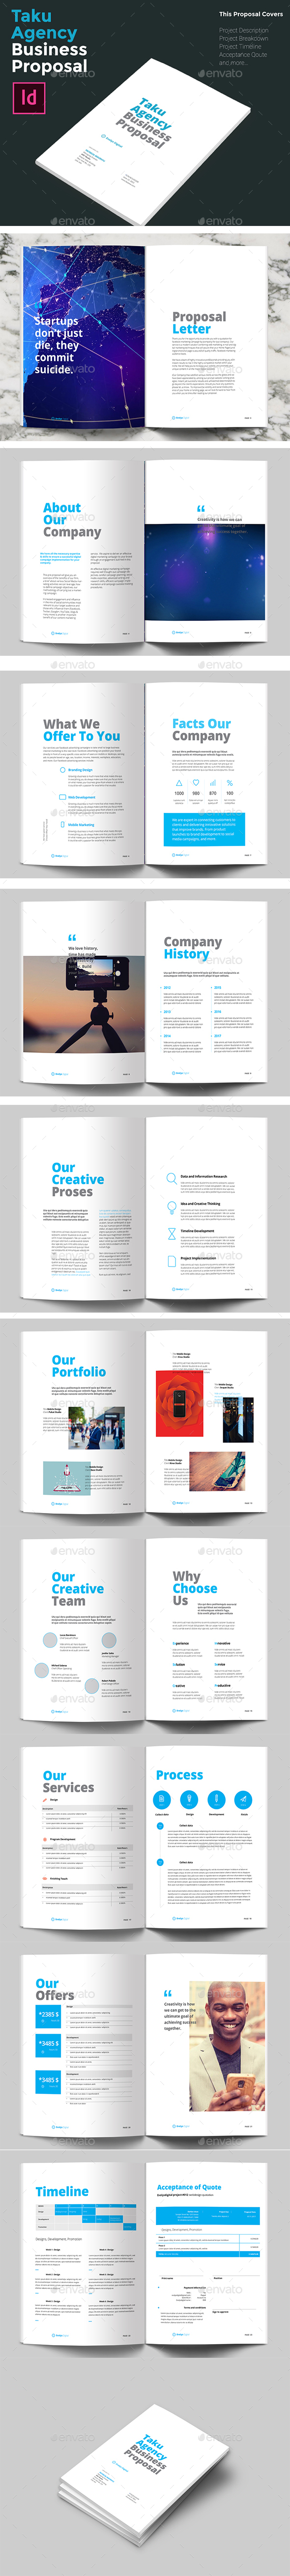 Taku Clean Agency Business Proposal Brochure - Proposals & Invoices Stationery